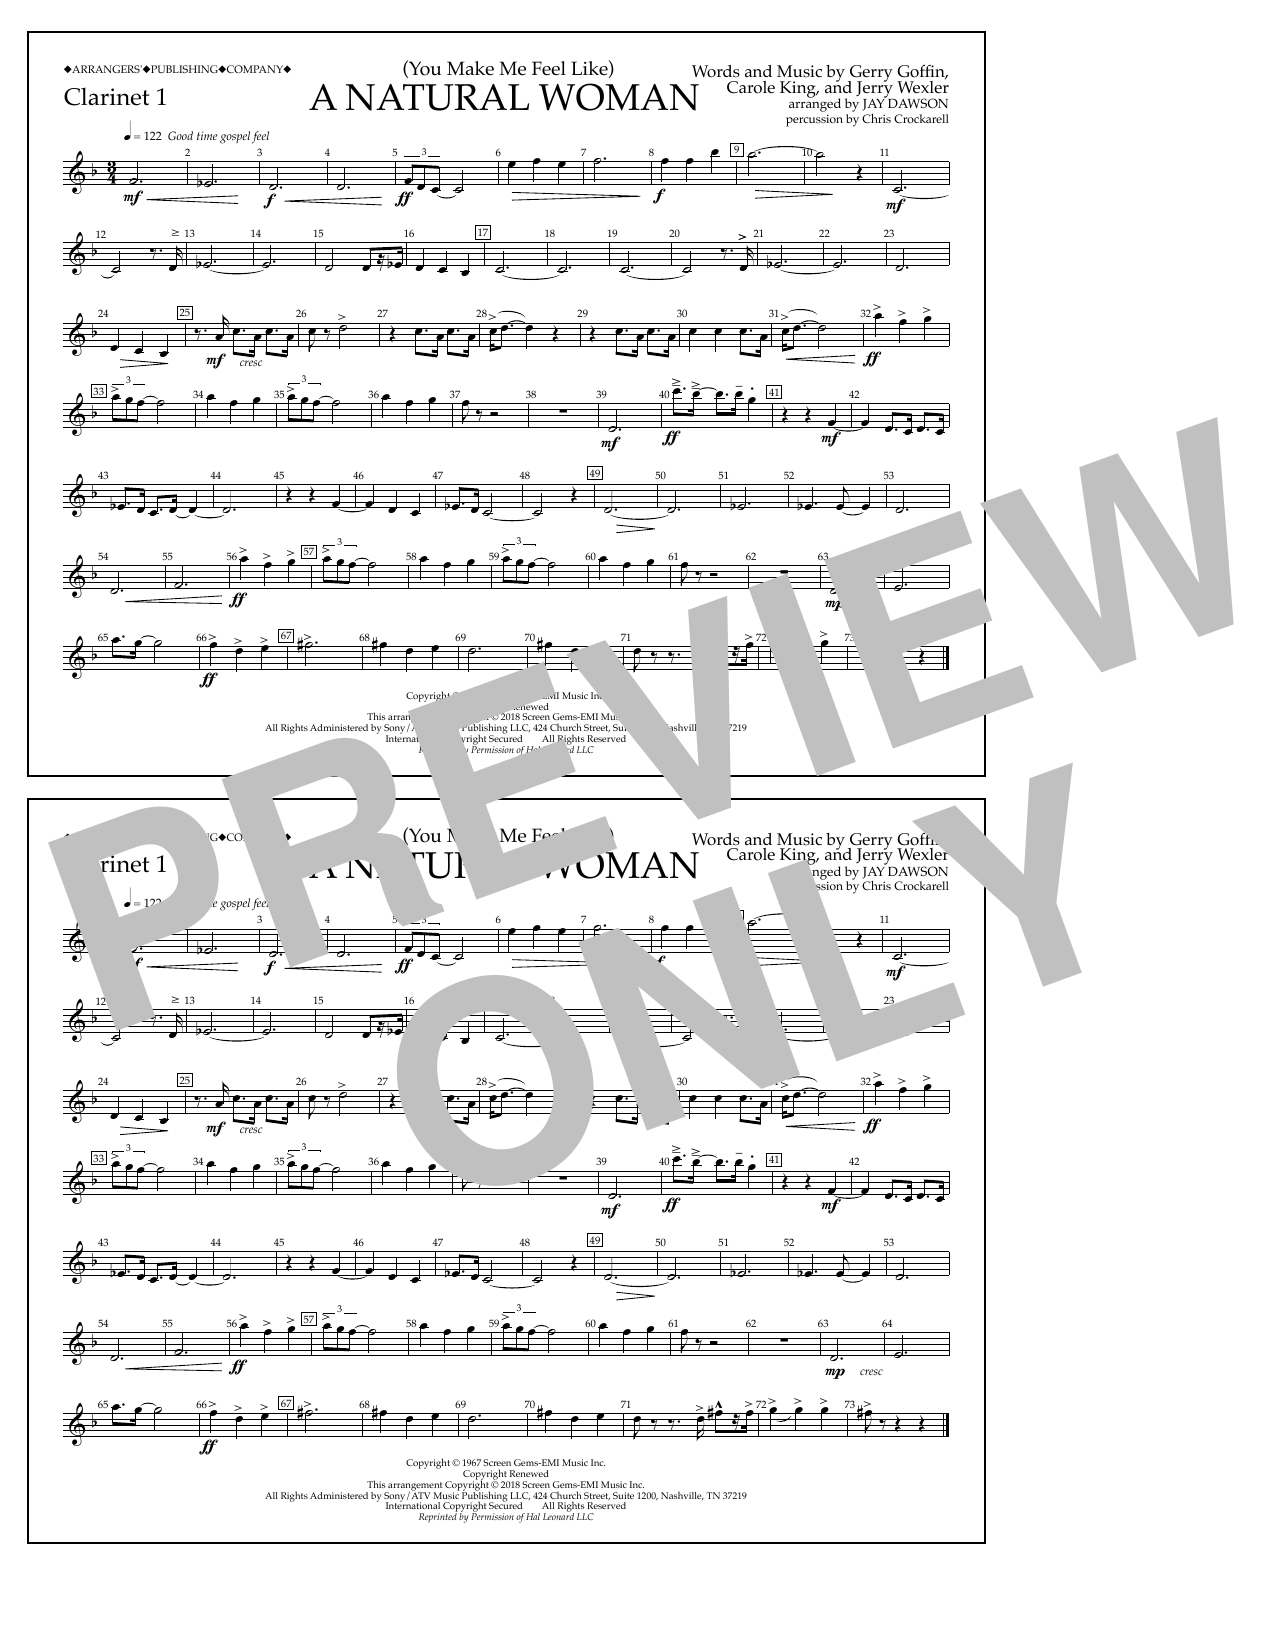 Download Aretha Franklin '(You Make Me Feel Like) A Natural Woman (arr. Jay Dawson) - Clarinet 1' Digital Sheet Music Notes & Chords and start playing in minutes